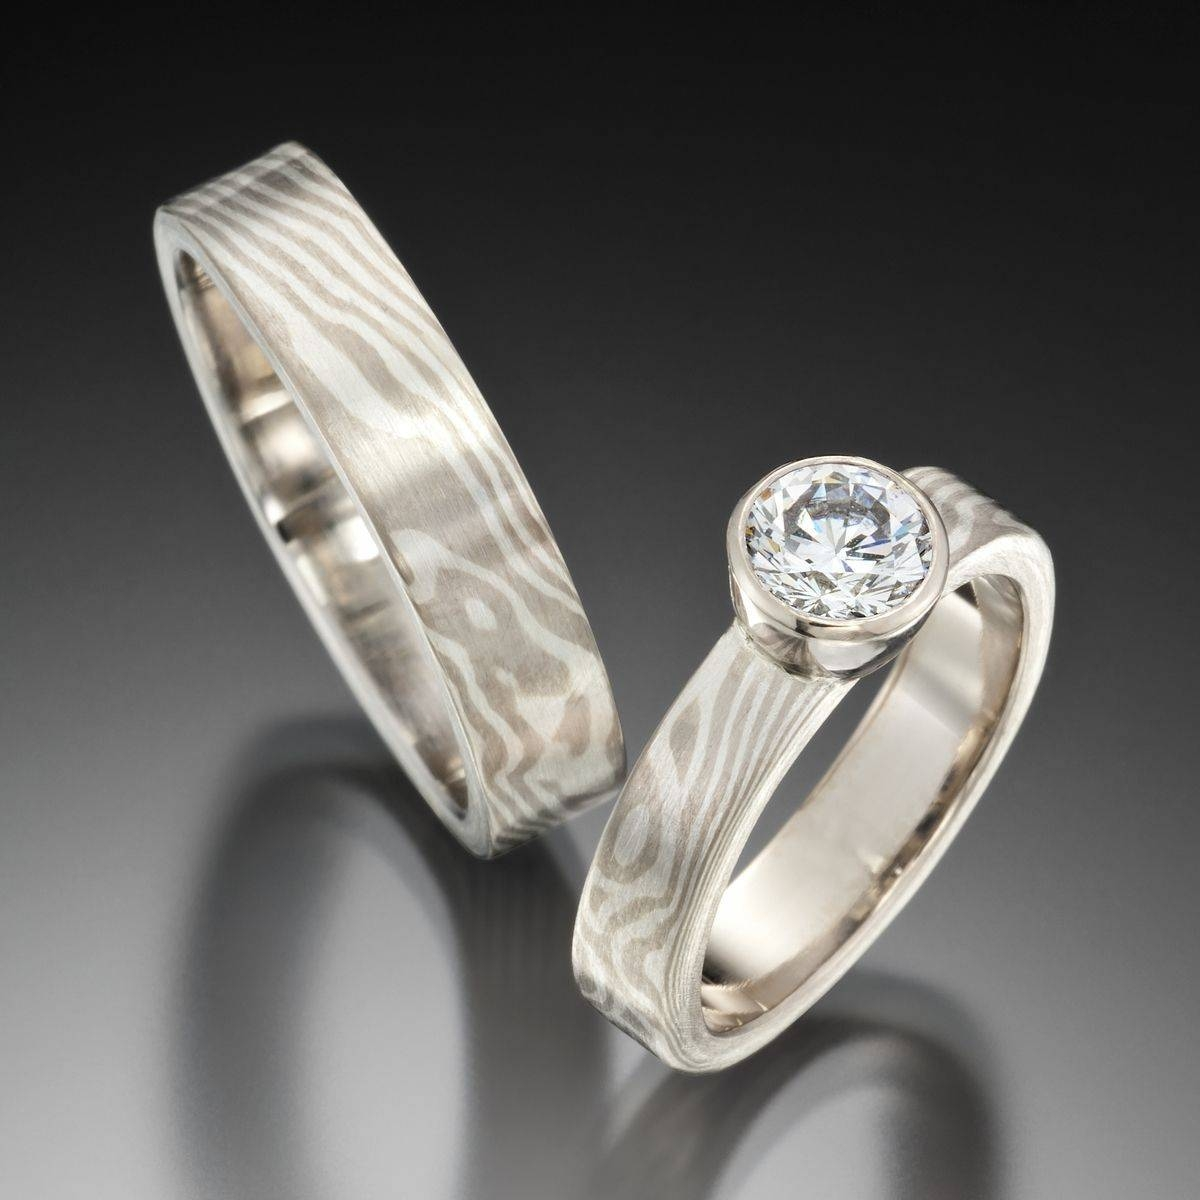 2017 Popular Mokume Gane Wedding Bands Throughout San Francisco Wedding Bands (Gallery 3 of 15)